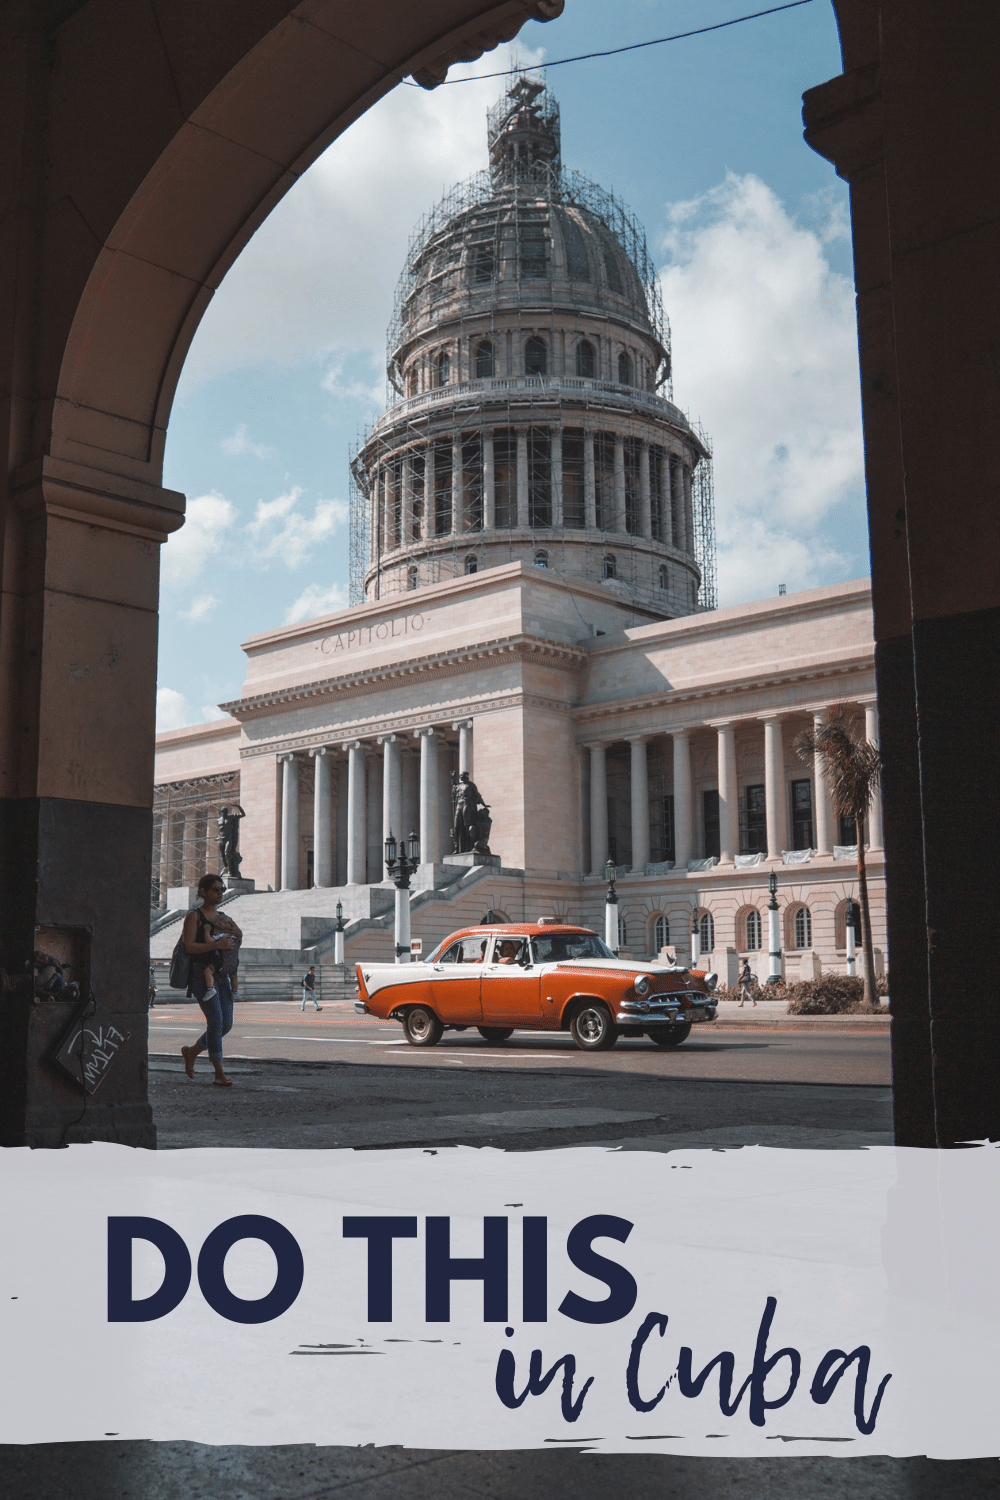 Travel tips about the best activities for Cuba travel - straight from local and expat bloggers! These are the top 10 activities for a Support for the Cuban People authorized trip for citizens of the United States, but they're also our favorite activities for travelers from anywhere. Including our recommendations about renting a classic car, taking a cooking class, and finding the best hotels and restaurants. #Cubatravel #traveltips #travelinspiration #Havana #Cuba